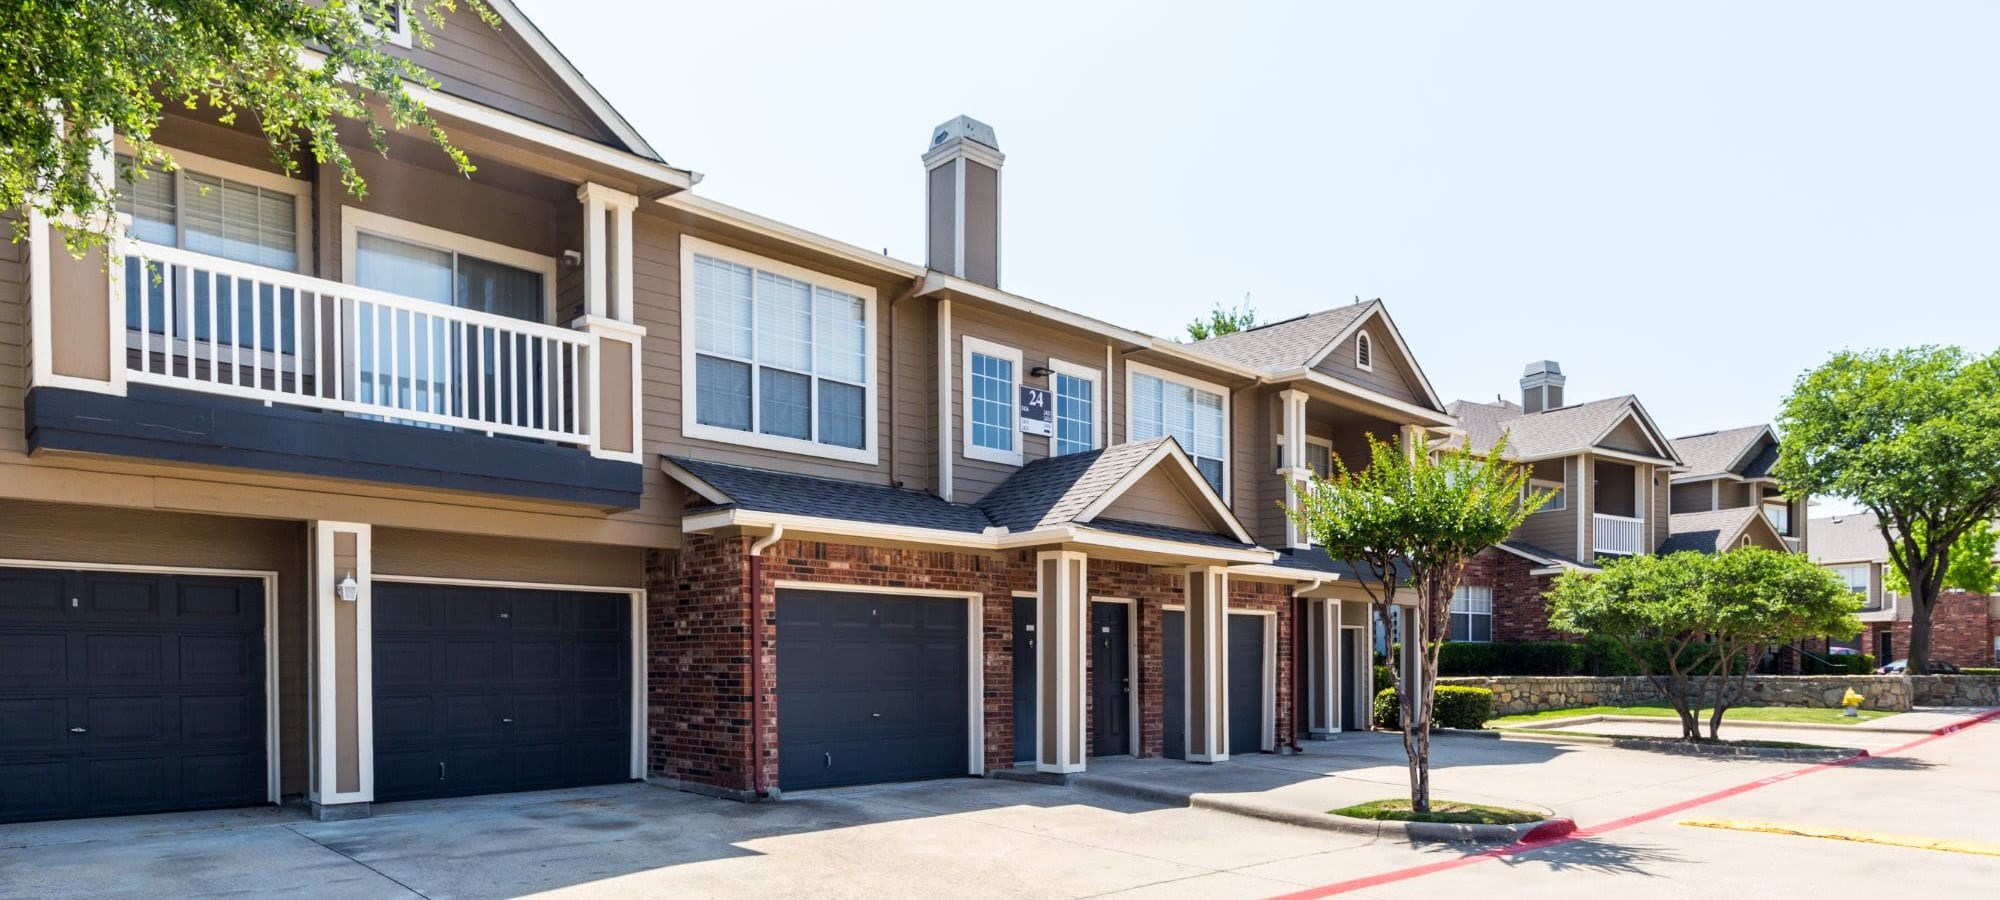 Apply to live at Marquis at Stonebriar in Frisco, Texas